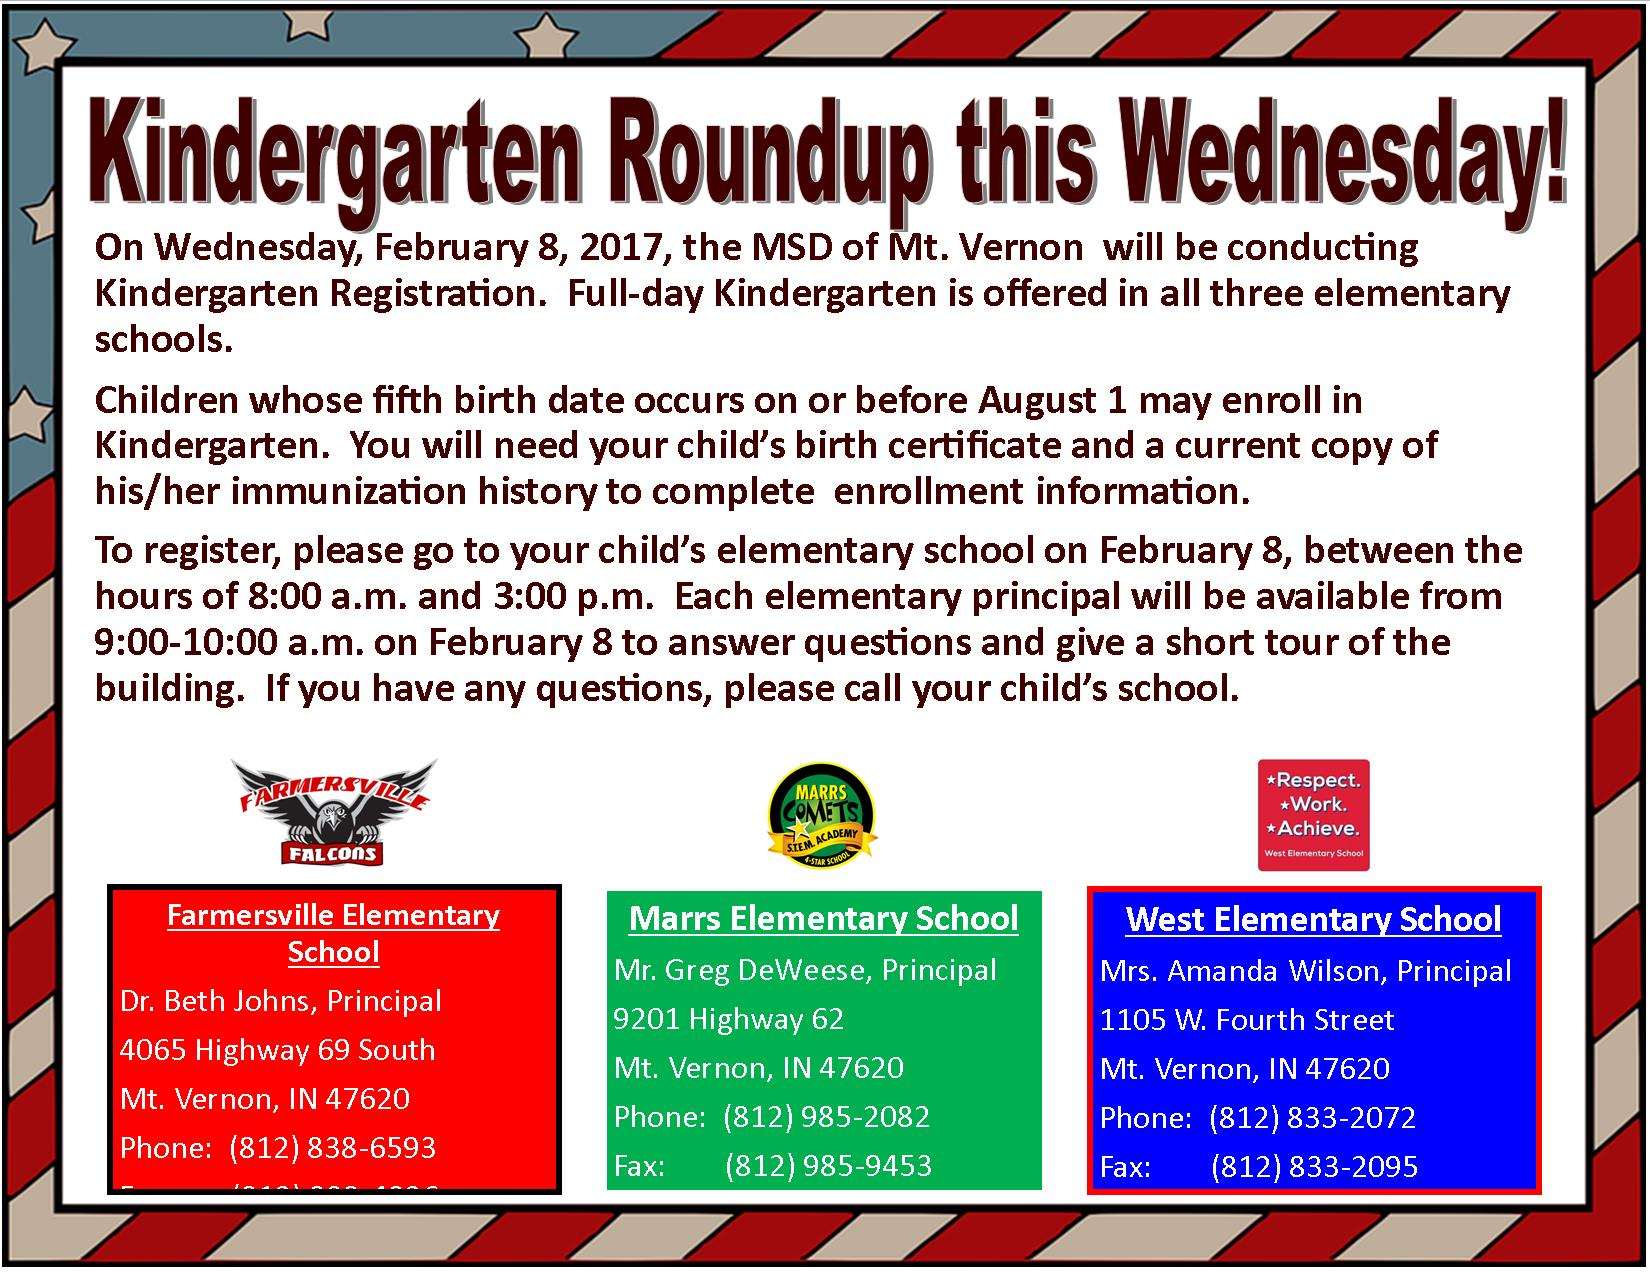 KINDERGARTEN ROUNDUP FINAL REMINDER FLAG BOARDER 3